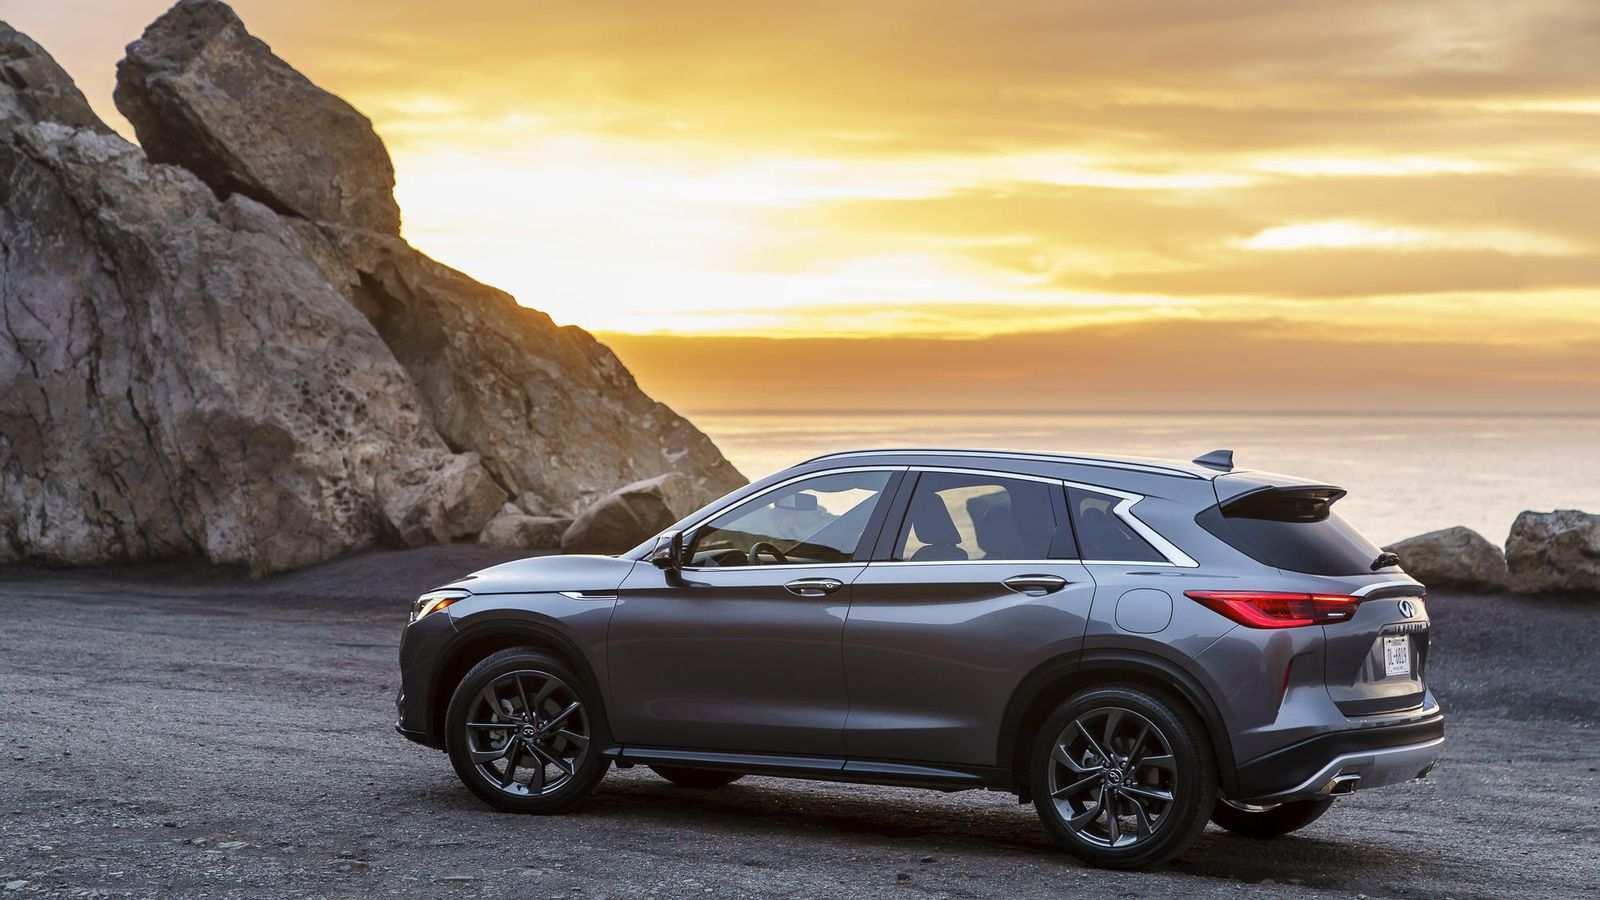 21 A 2019 Infiniti Qx50 Review Price And Release Date